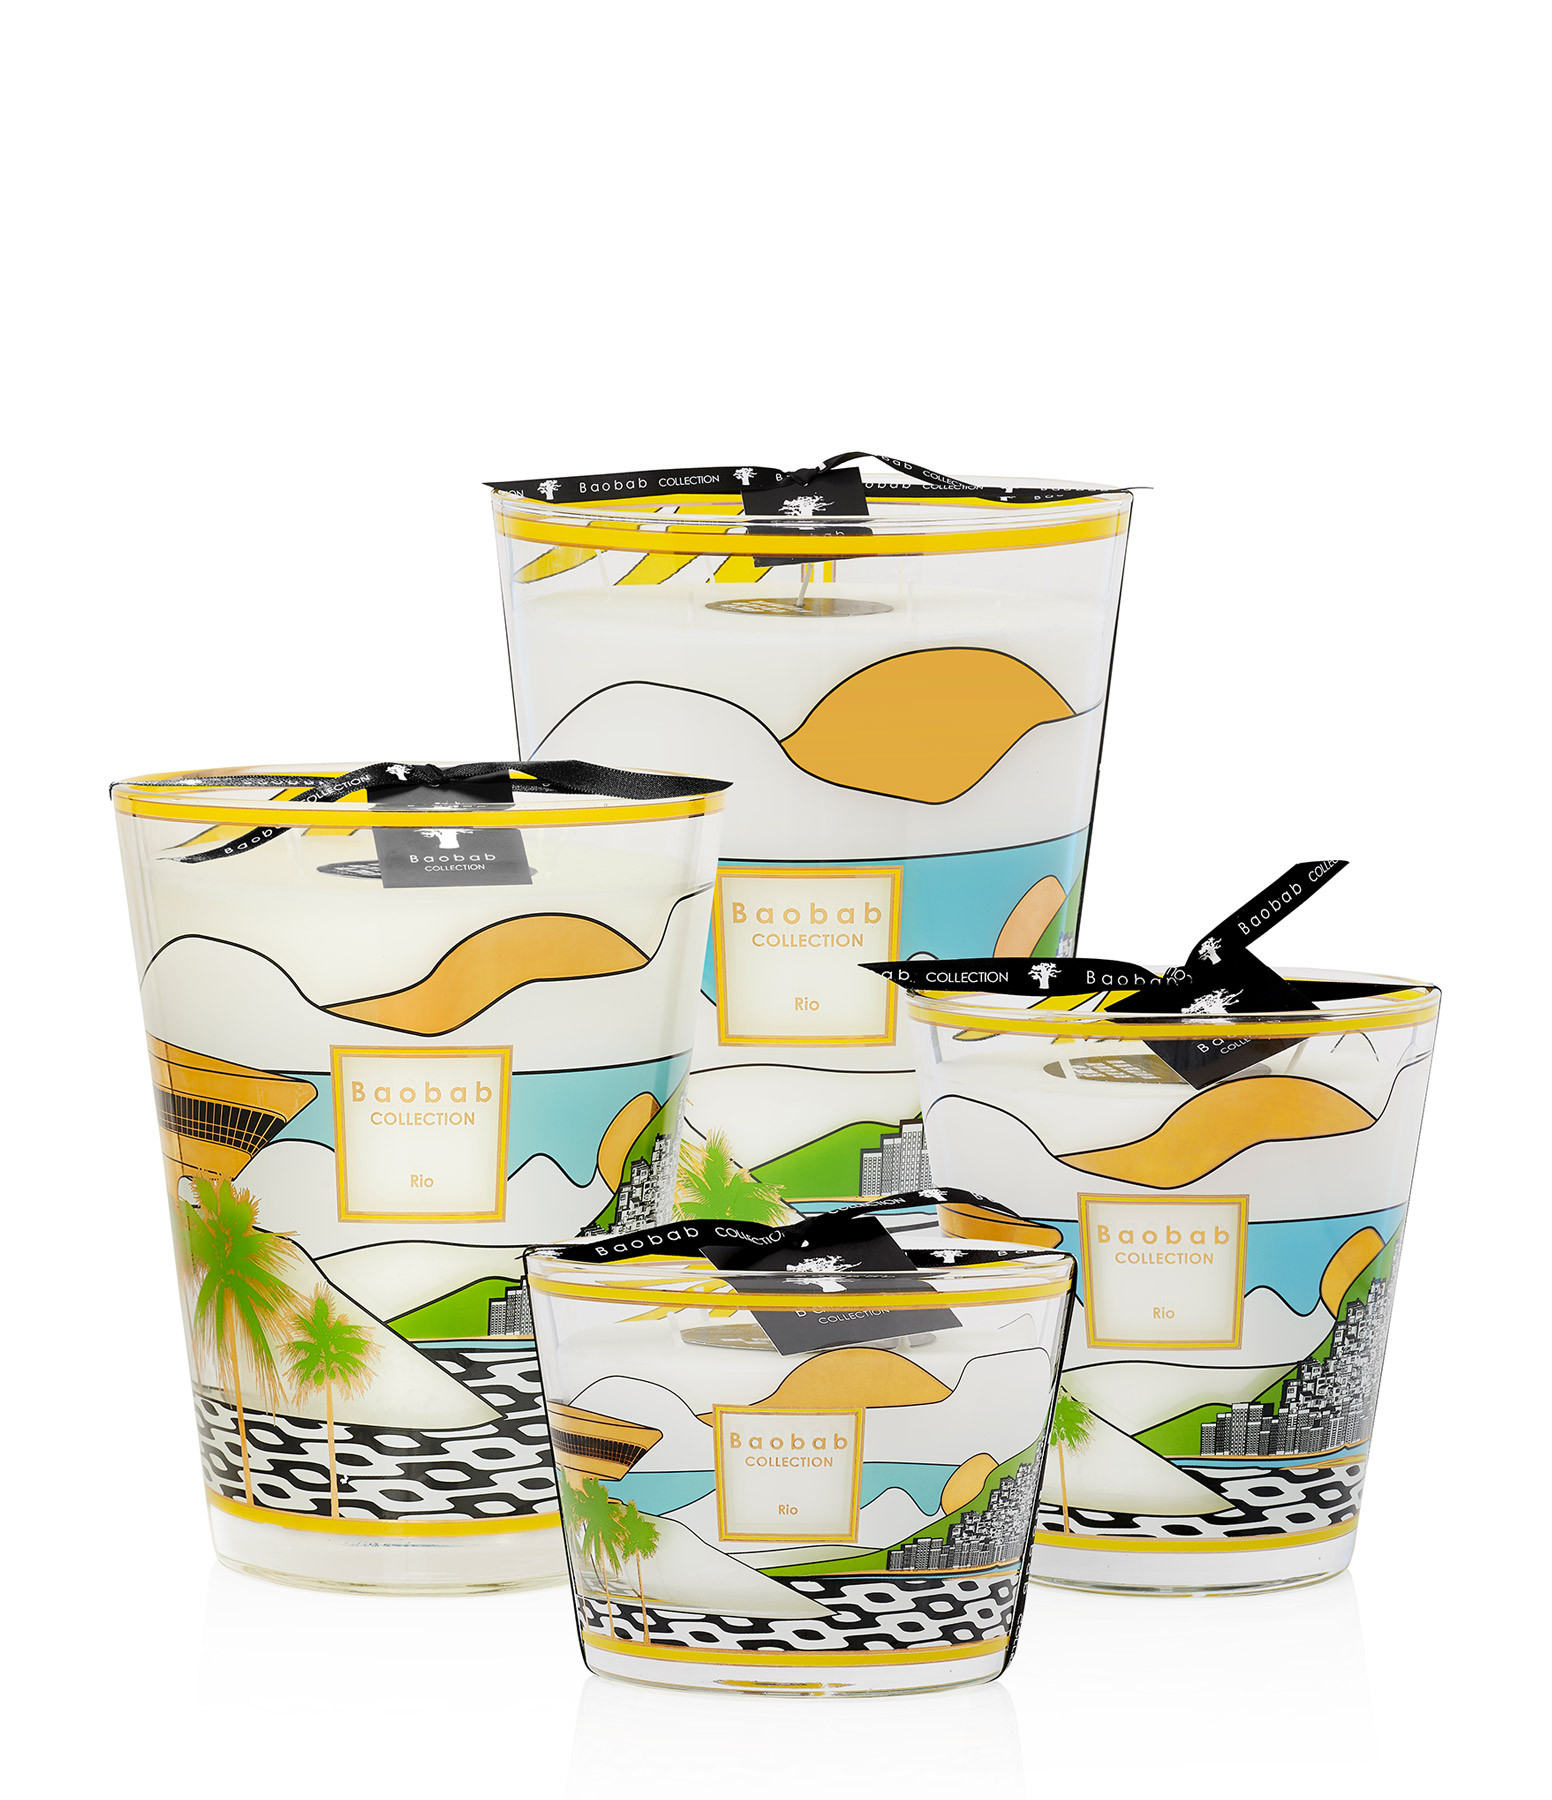 BAOBAB COLLECTION - Bougie Max 10 Cities Rio